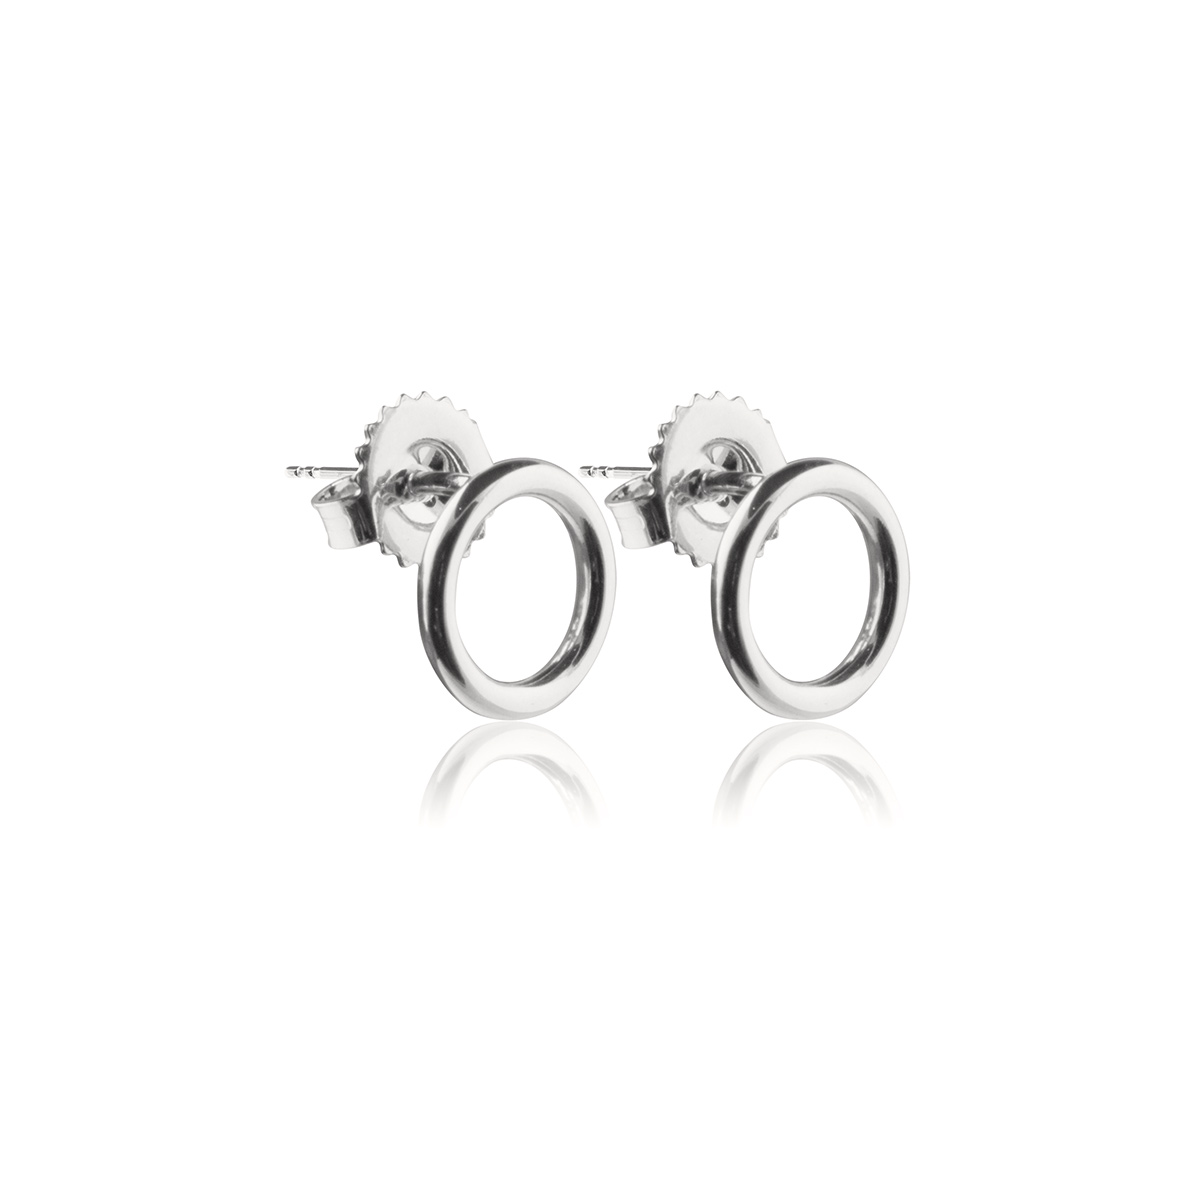 Circle-studs-Rodium-pläterad-silver-Sophie-by-Sophie-Side-R